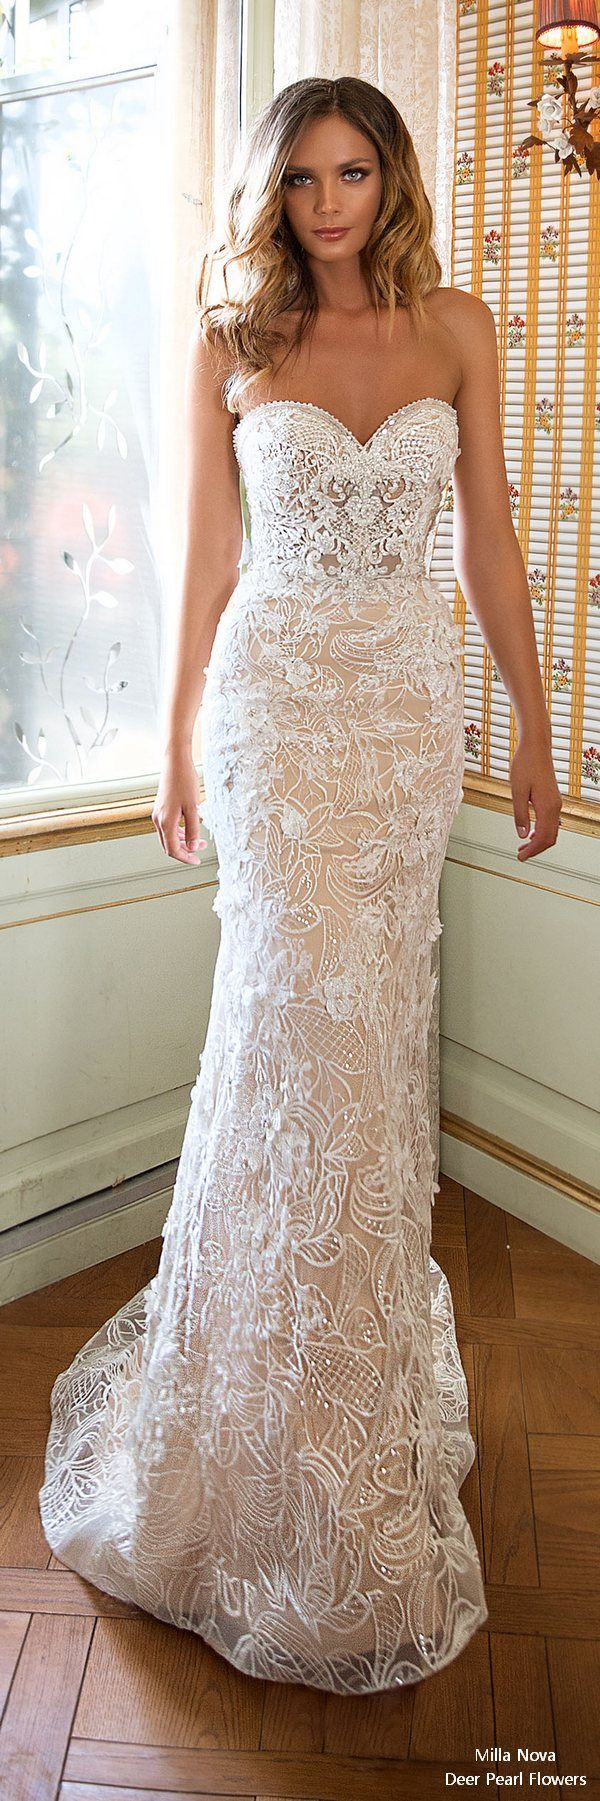 best carla images on pinterest short wedding gowns wedding